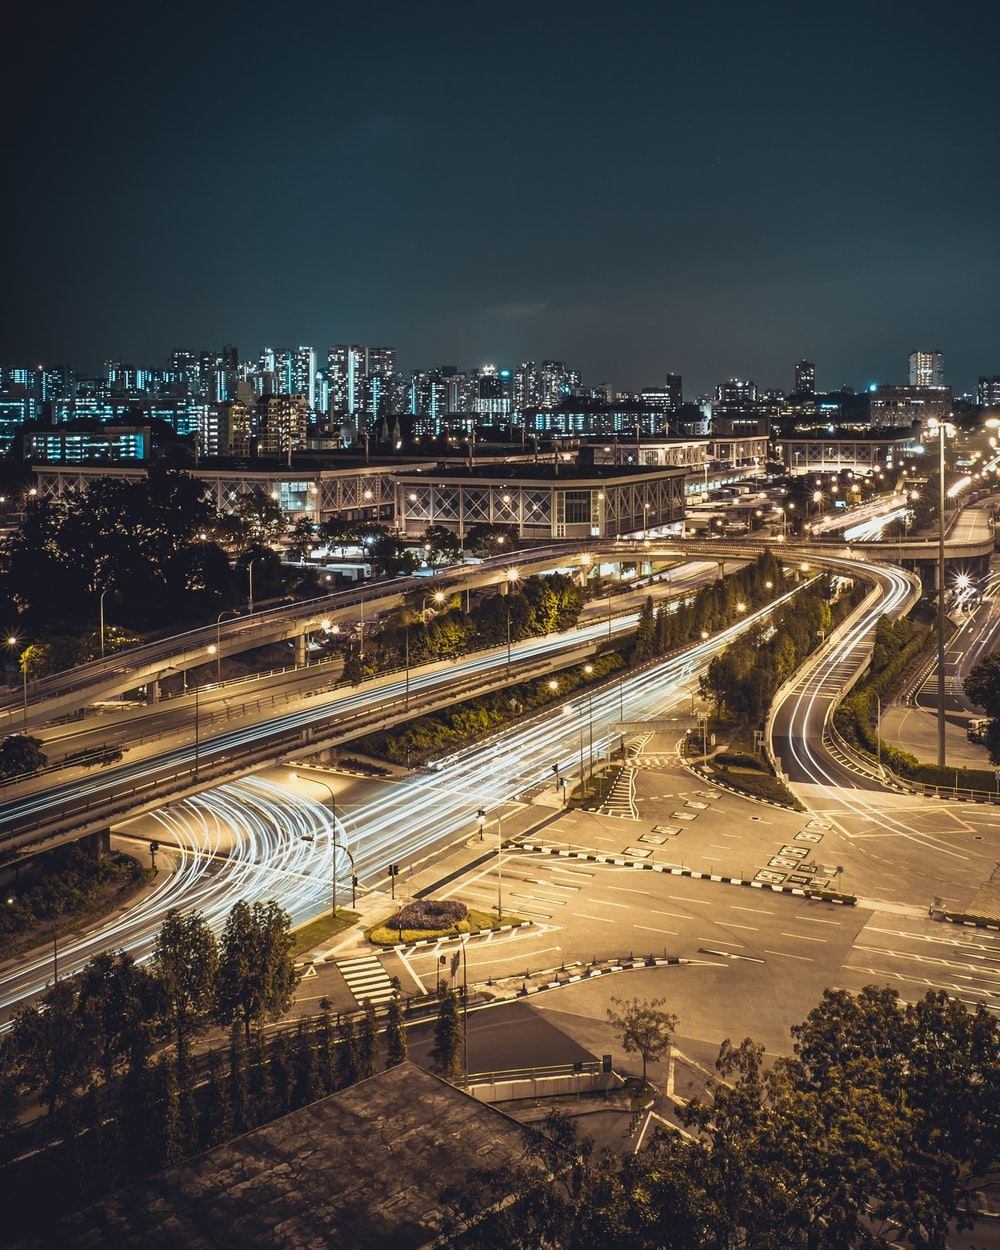 aerial timelapse photography of cars passing on road intersection at night time